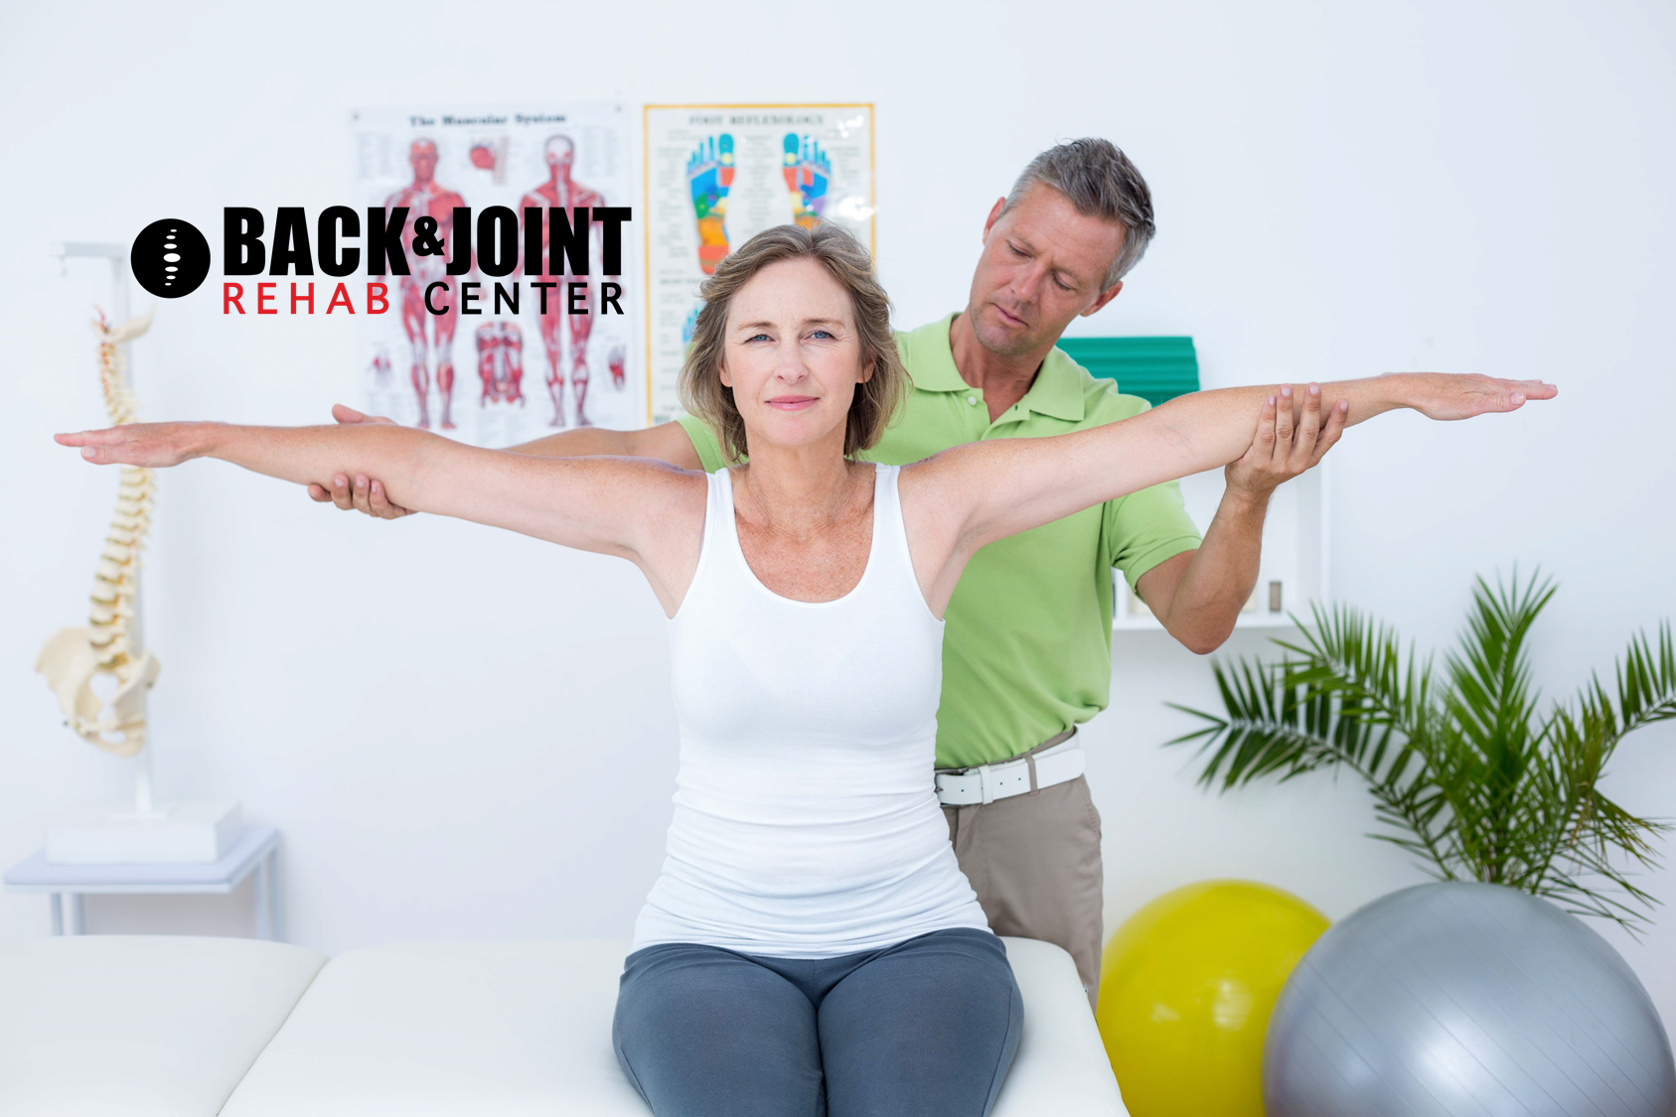 CHIROPRACTOR, PHYSICAL THERAPY, CROWN POINT, LOWELL, INDIANA, MERRILLVILLE, CEDAR LAKE, ST JOHN SHOULDER PAIN, ROTATOR CUFF, FROZEN SHOULDER, LIGAMENT